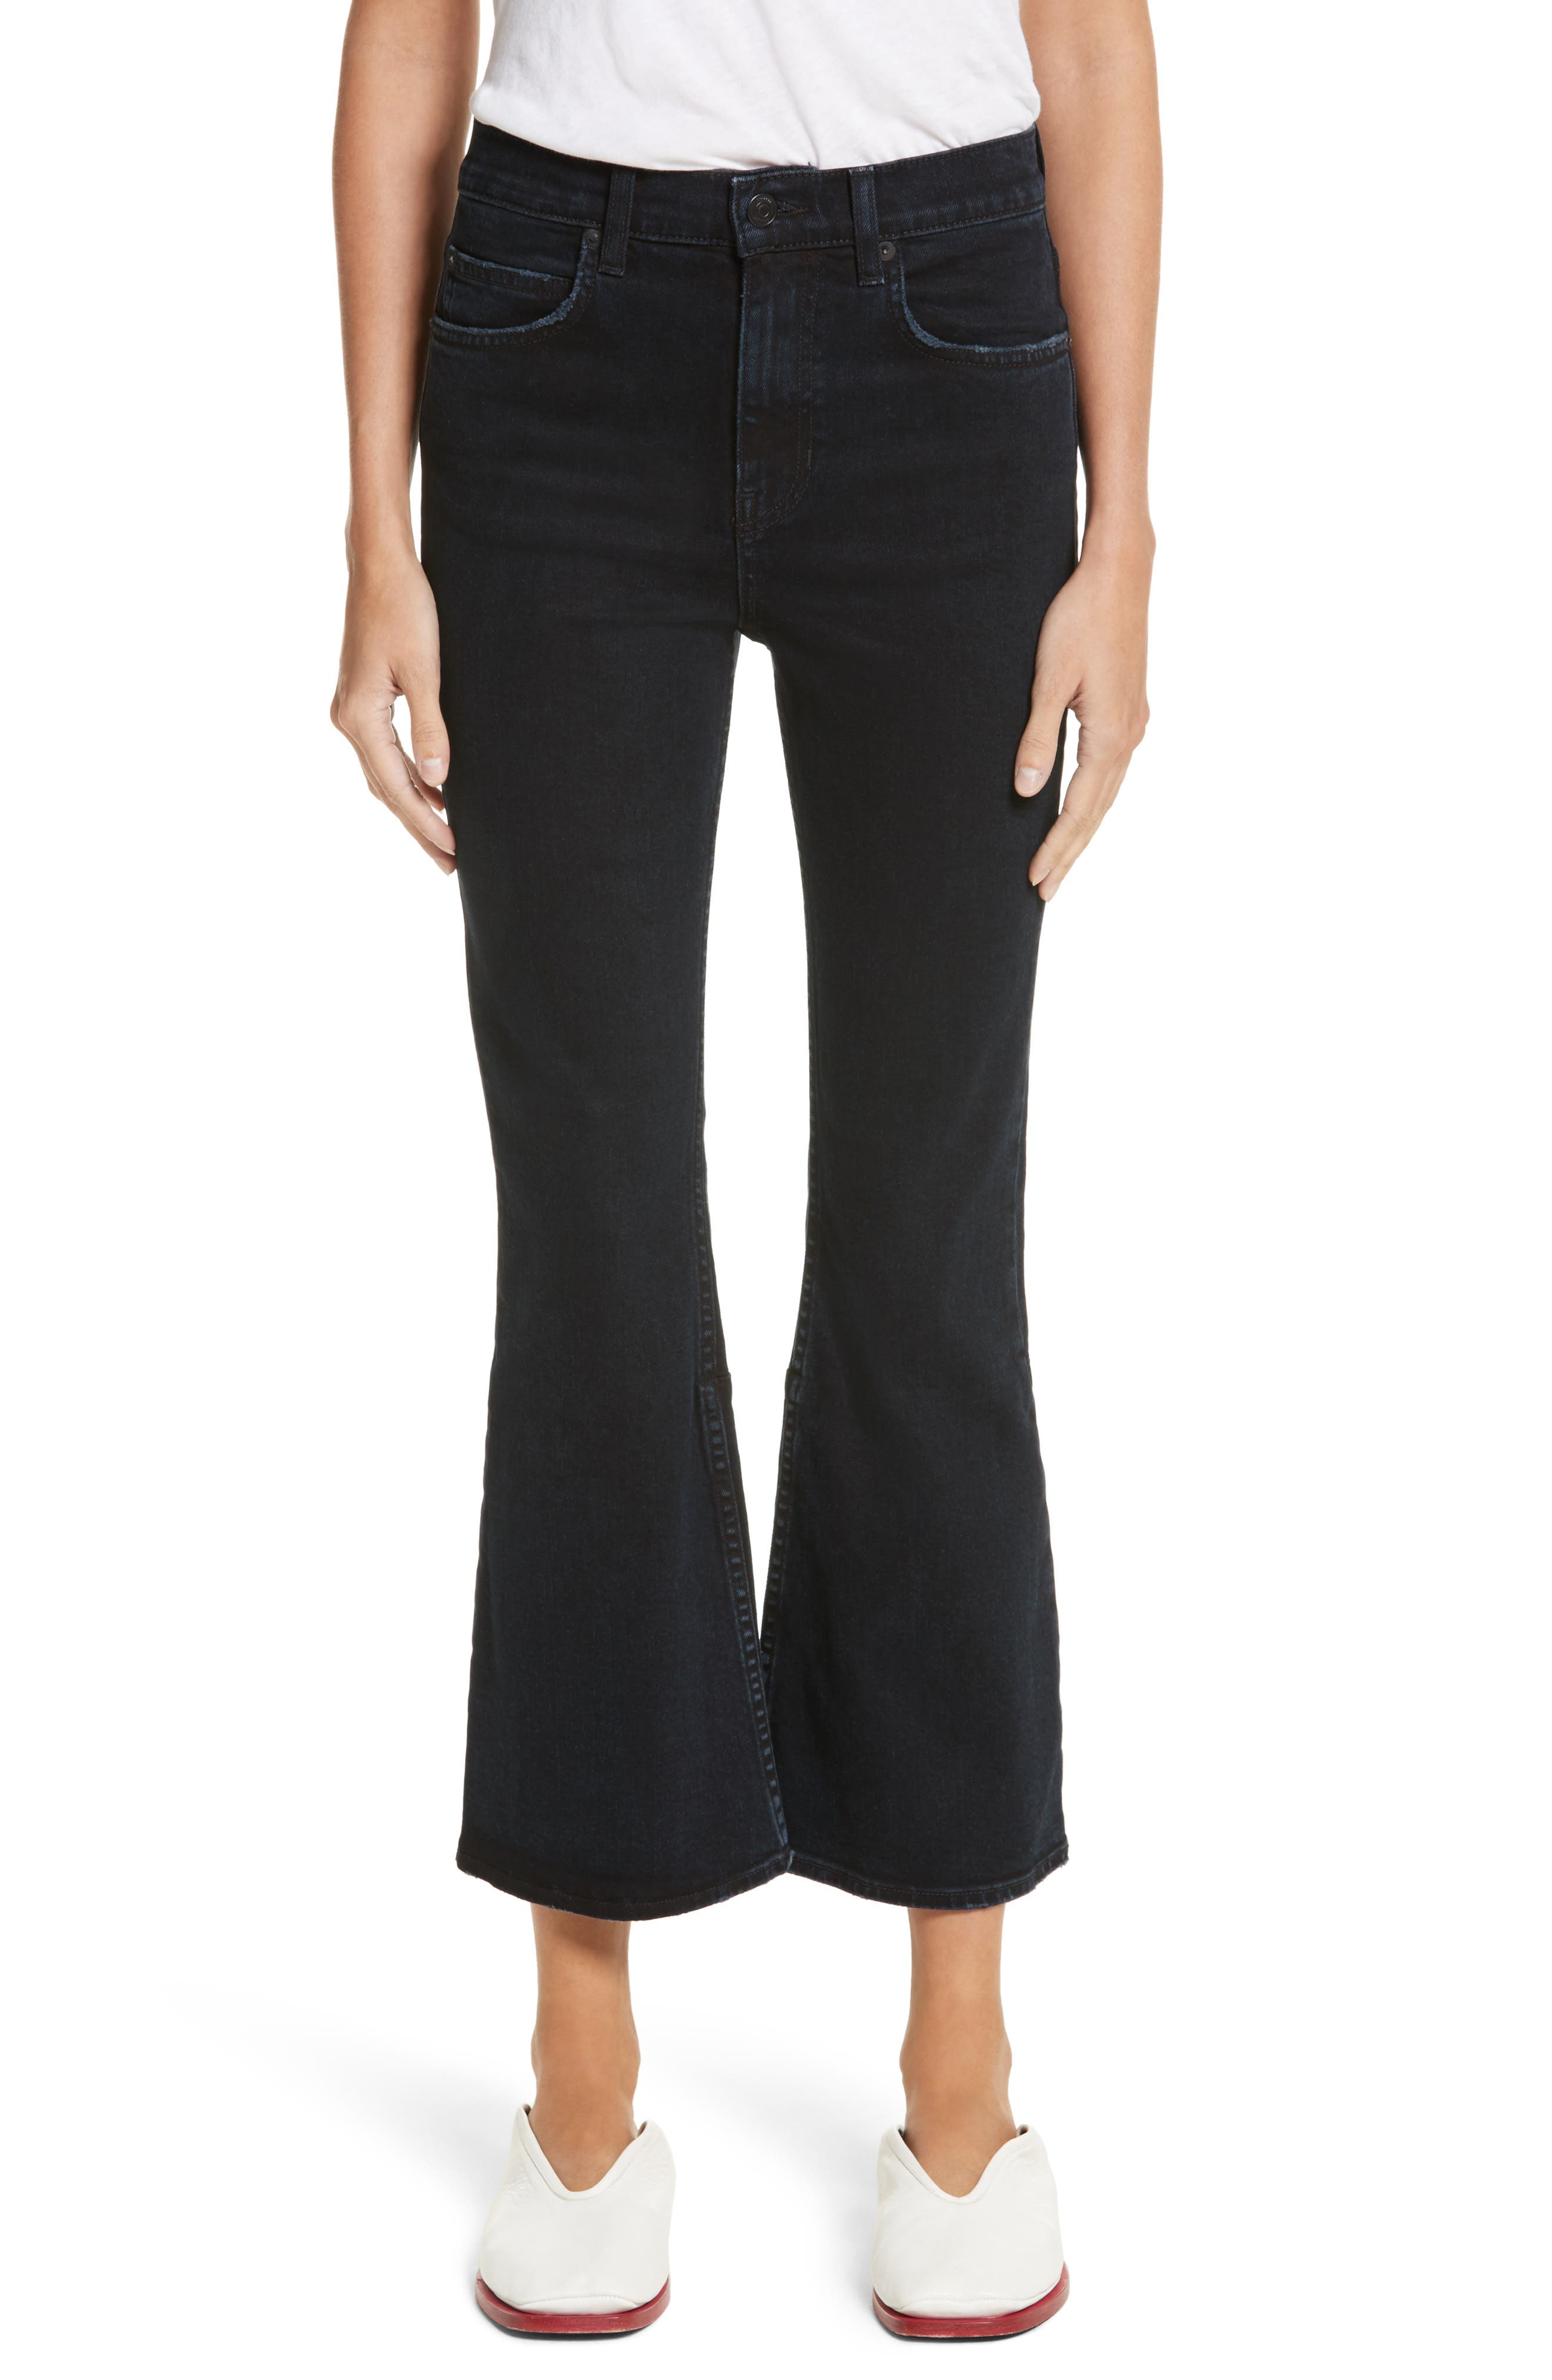 PSWL Crop Kick Flare Jeans,                             Main thumbnail 1, color,                             013